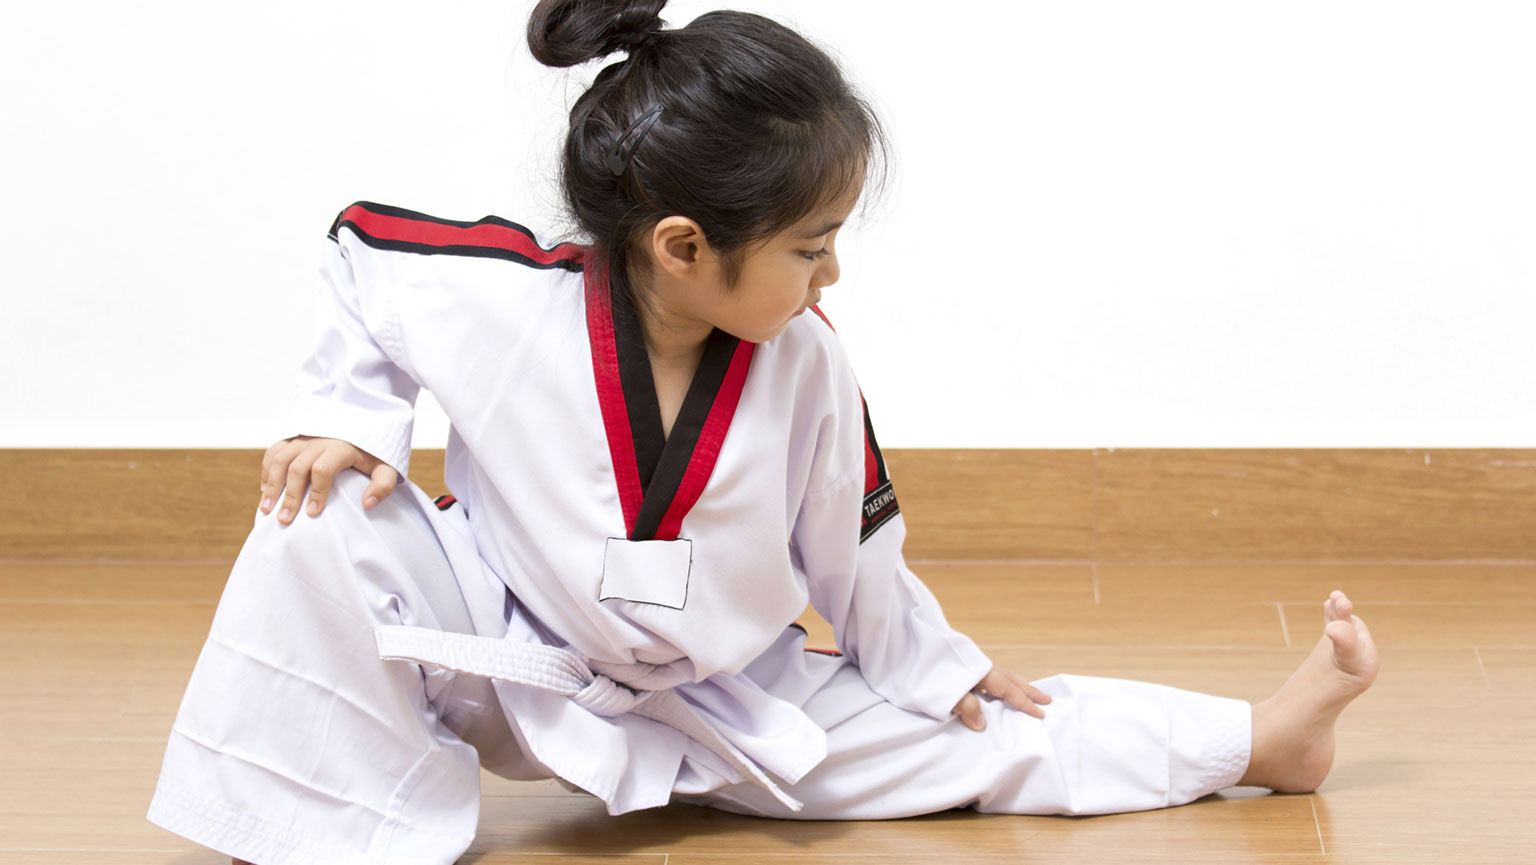 Self-Control—From Tummy Time to Tae Kwon Do